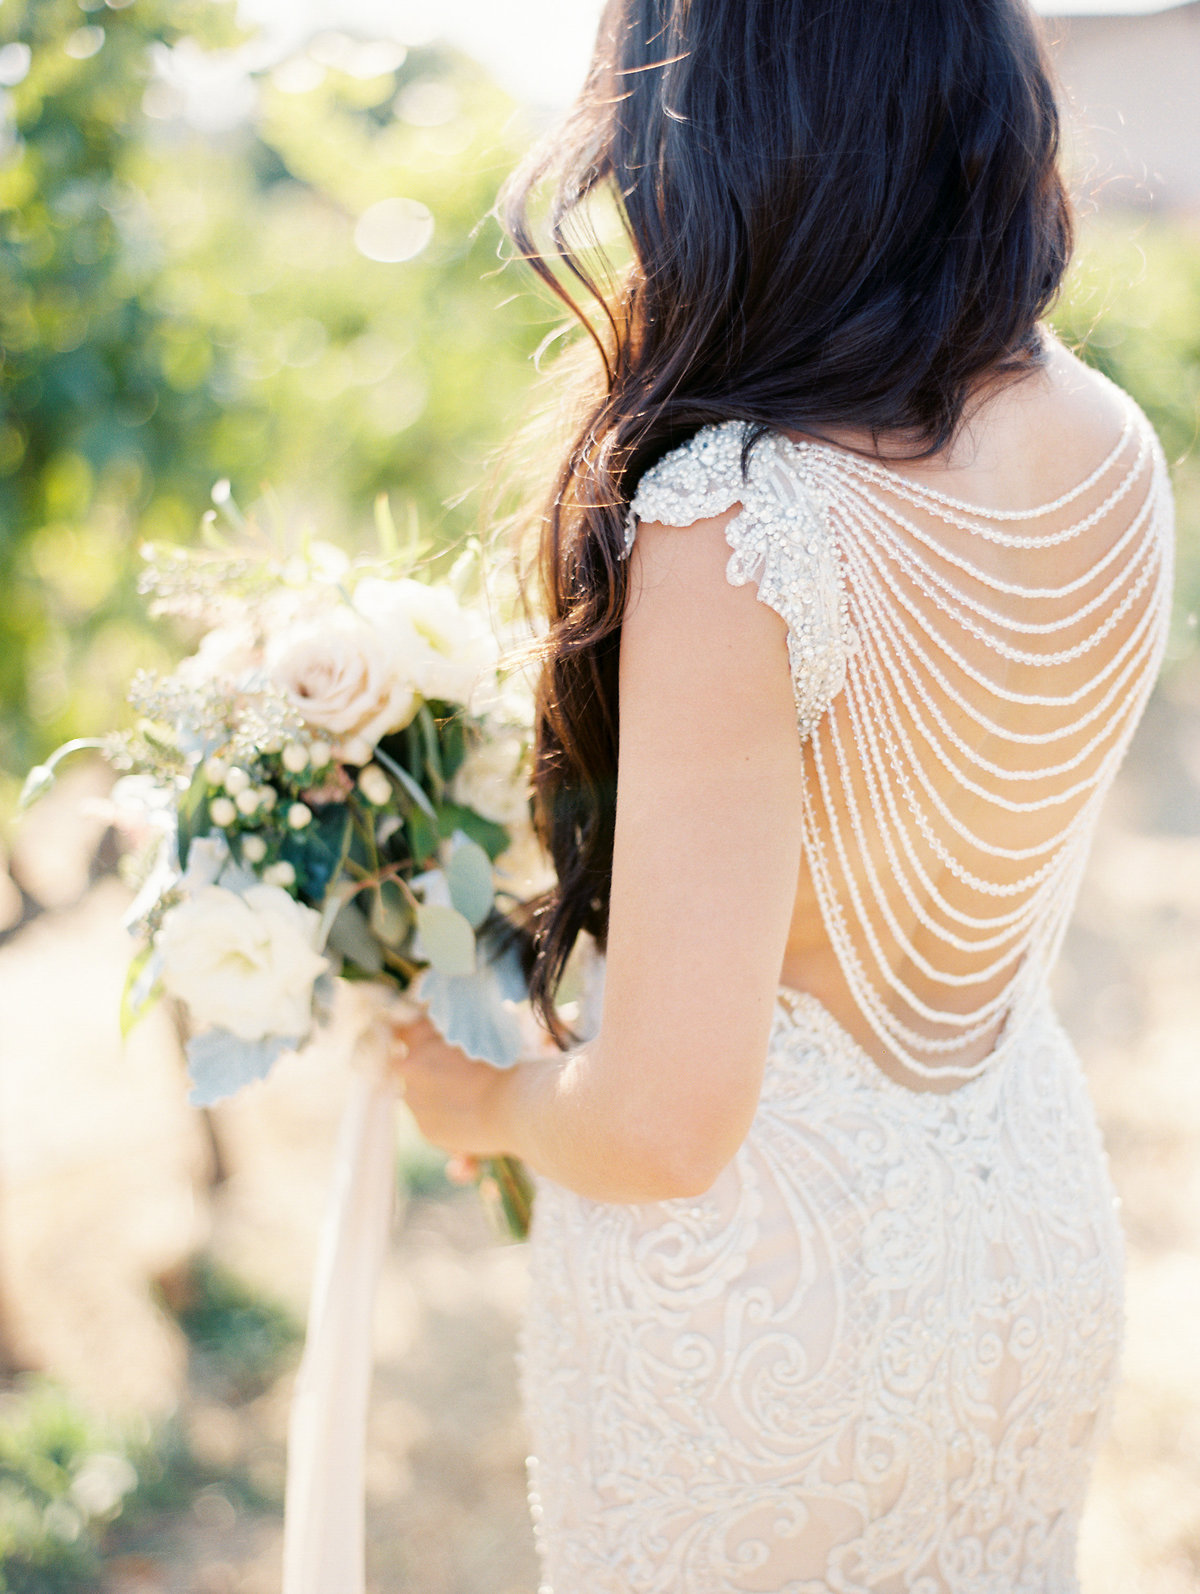 Natalie Bray Studios, Natalie Bray Photography, Southern California Wedding Photographer, Fine Art wedding, Destination Wedding Photographer, Sonoma Wedding Photographer-23